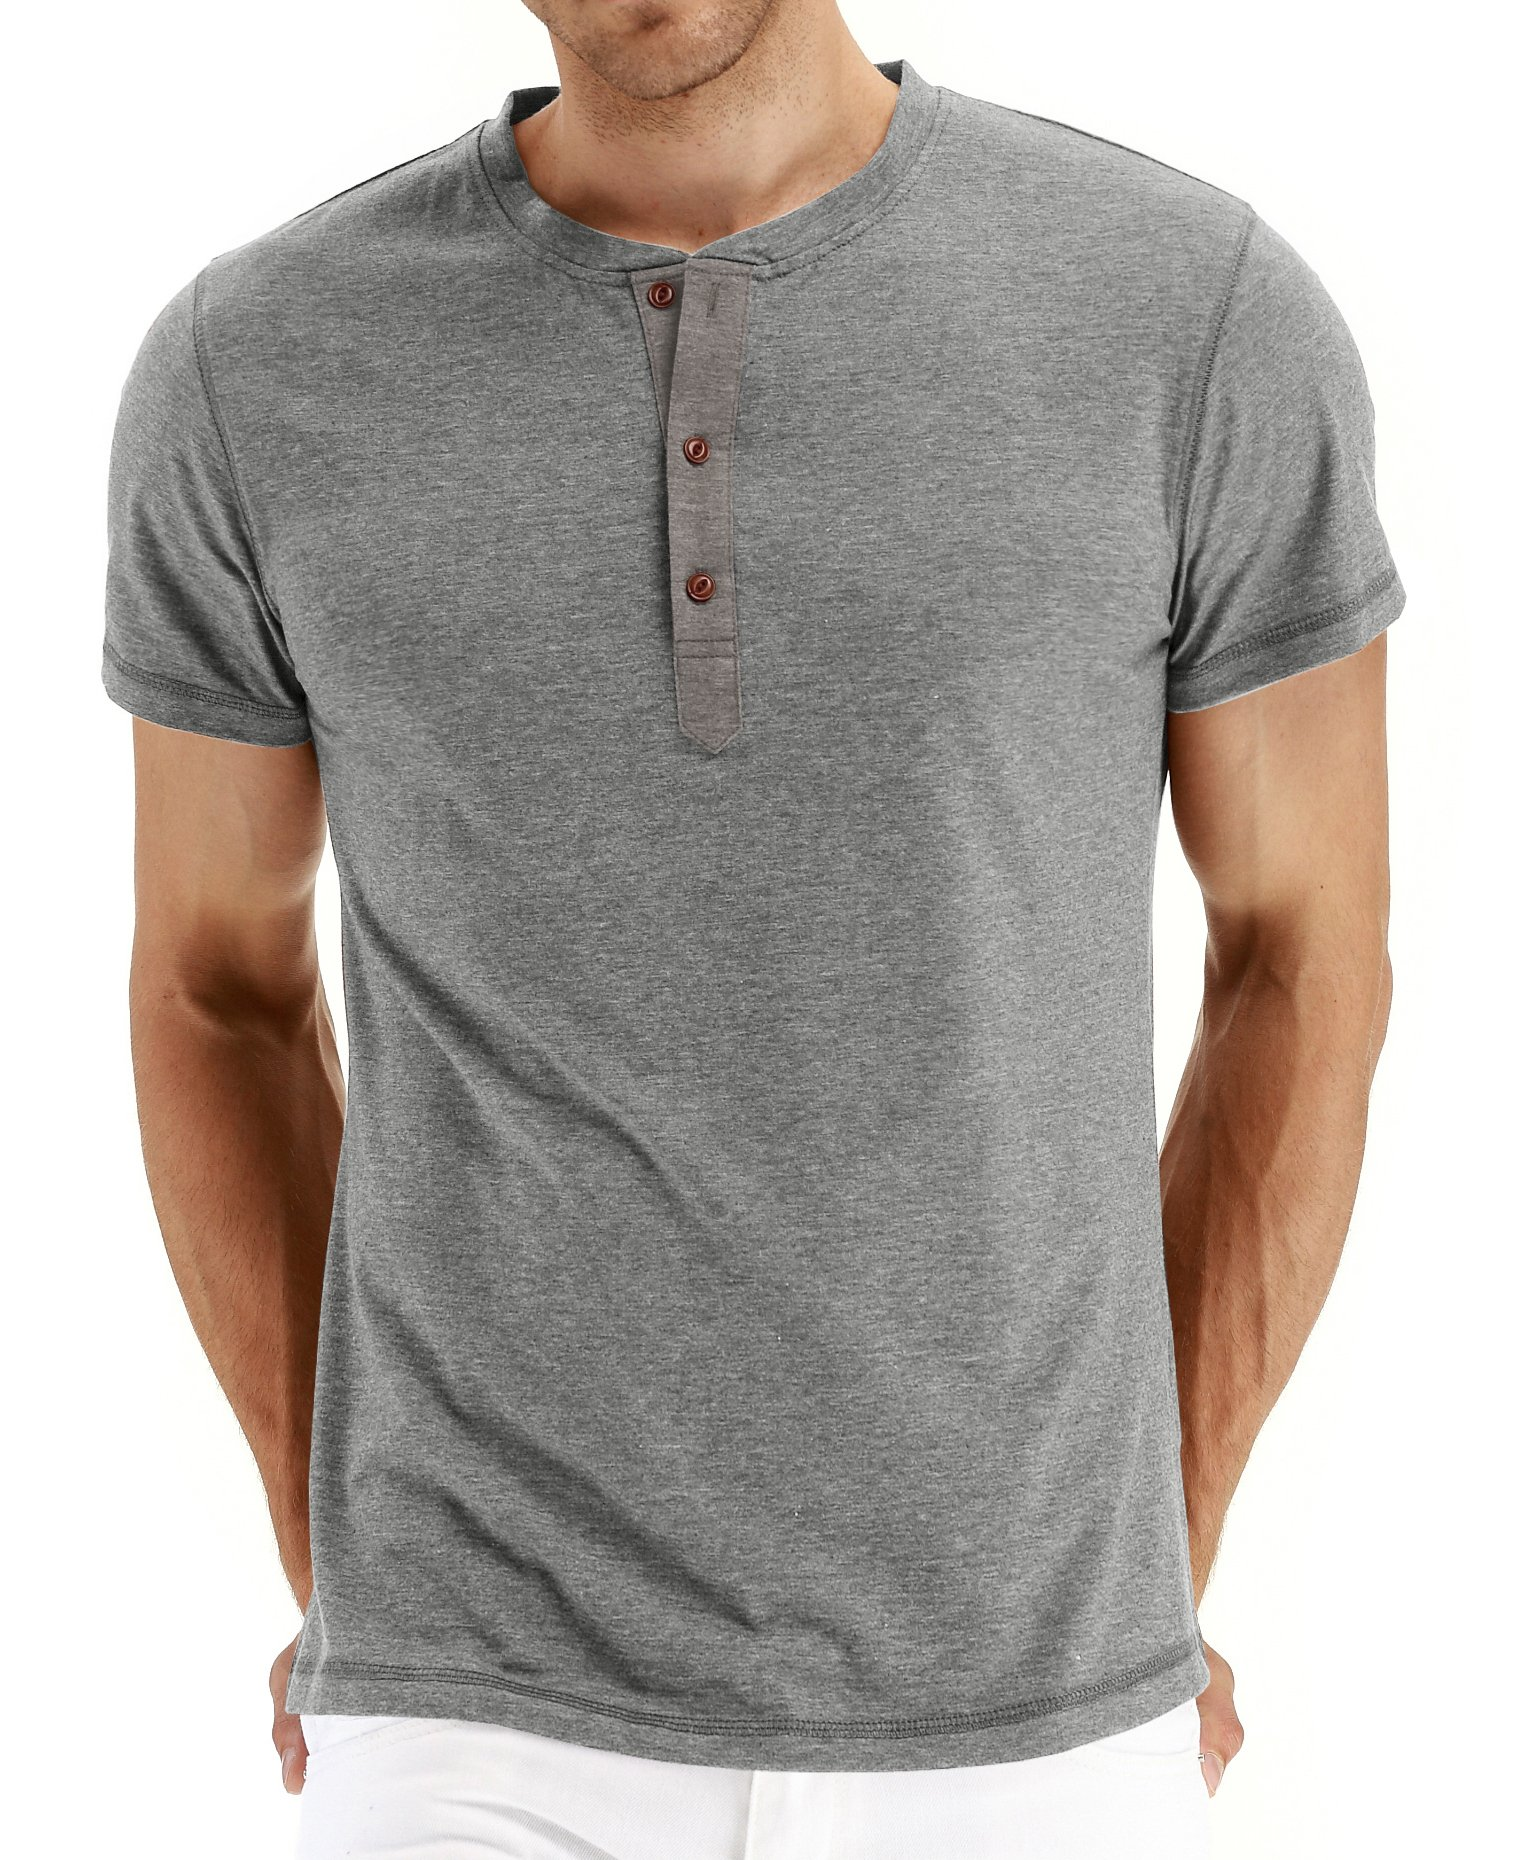 Mr.Zhang Men's Casual Slim Fit Short Sleeve Henley T-shirts Cotton Shirts Gray-US L